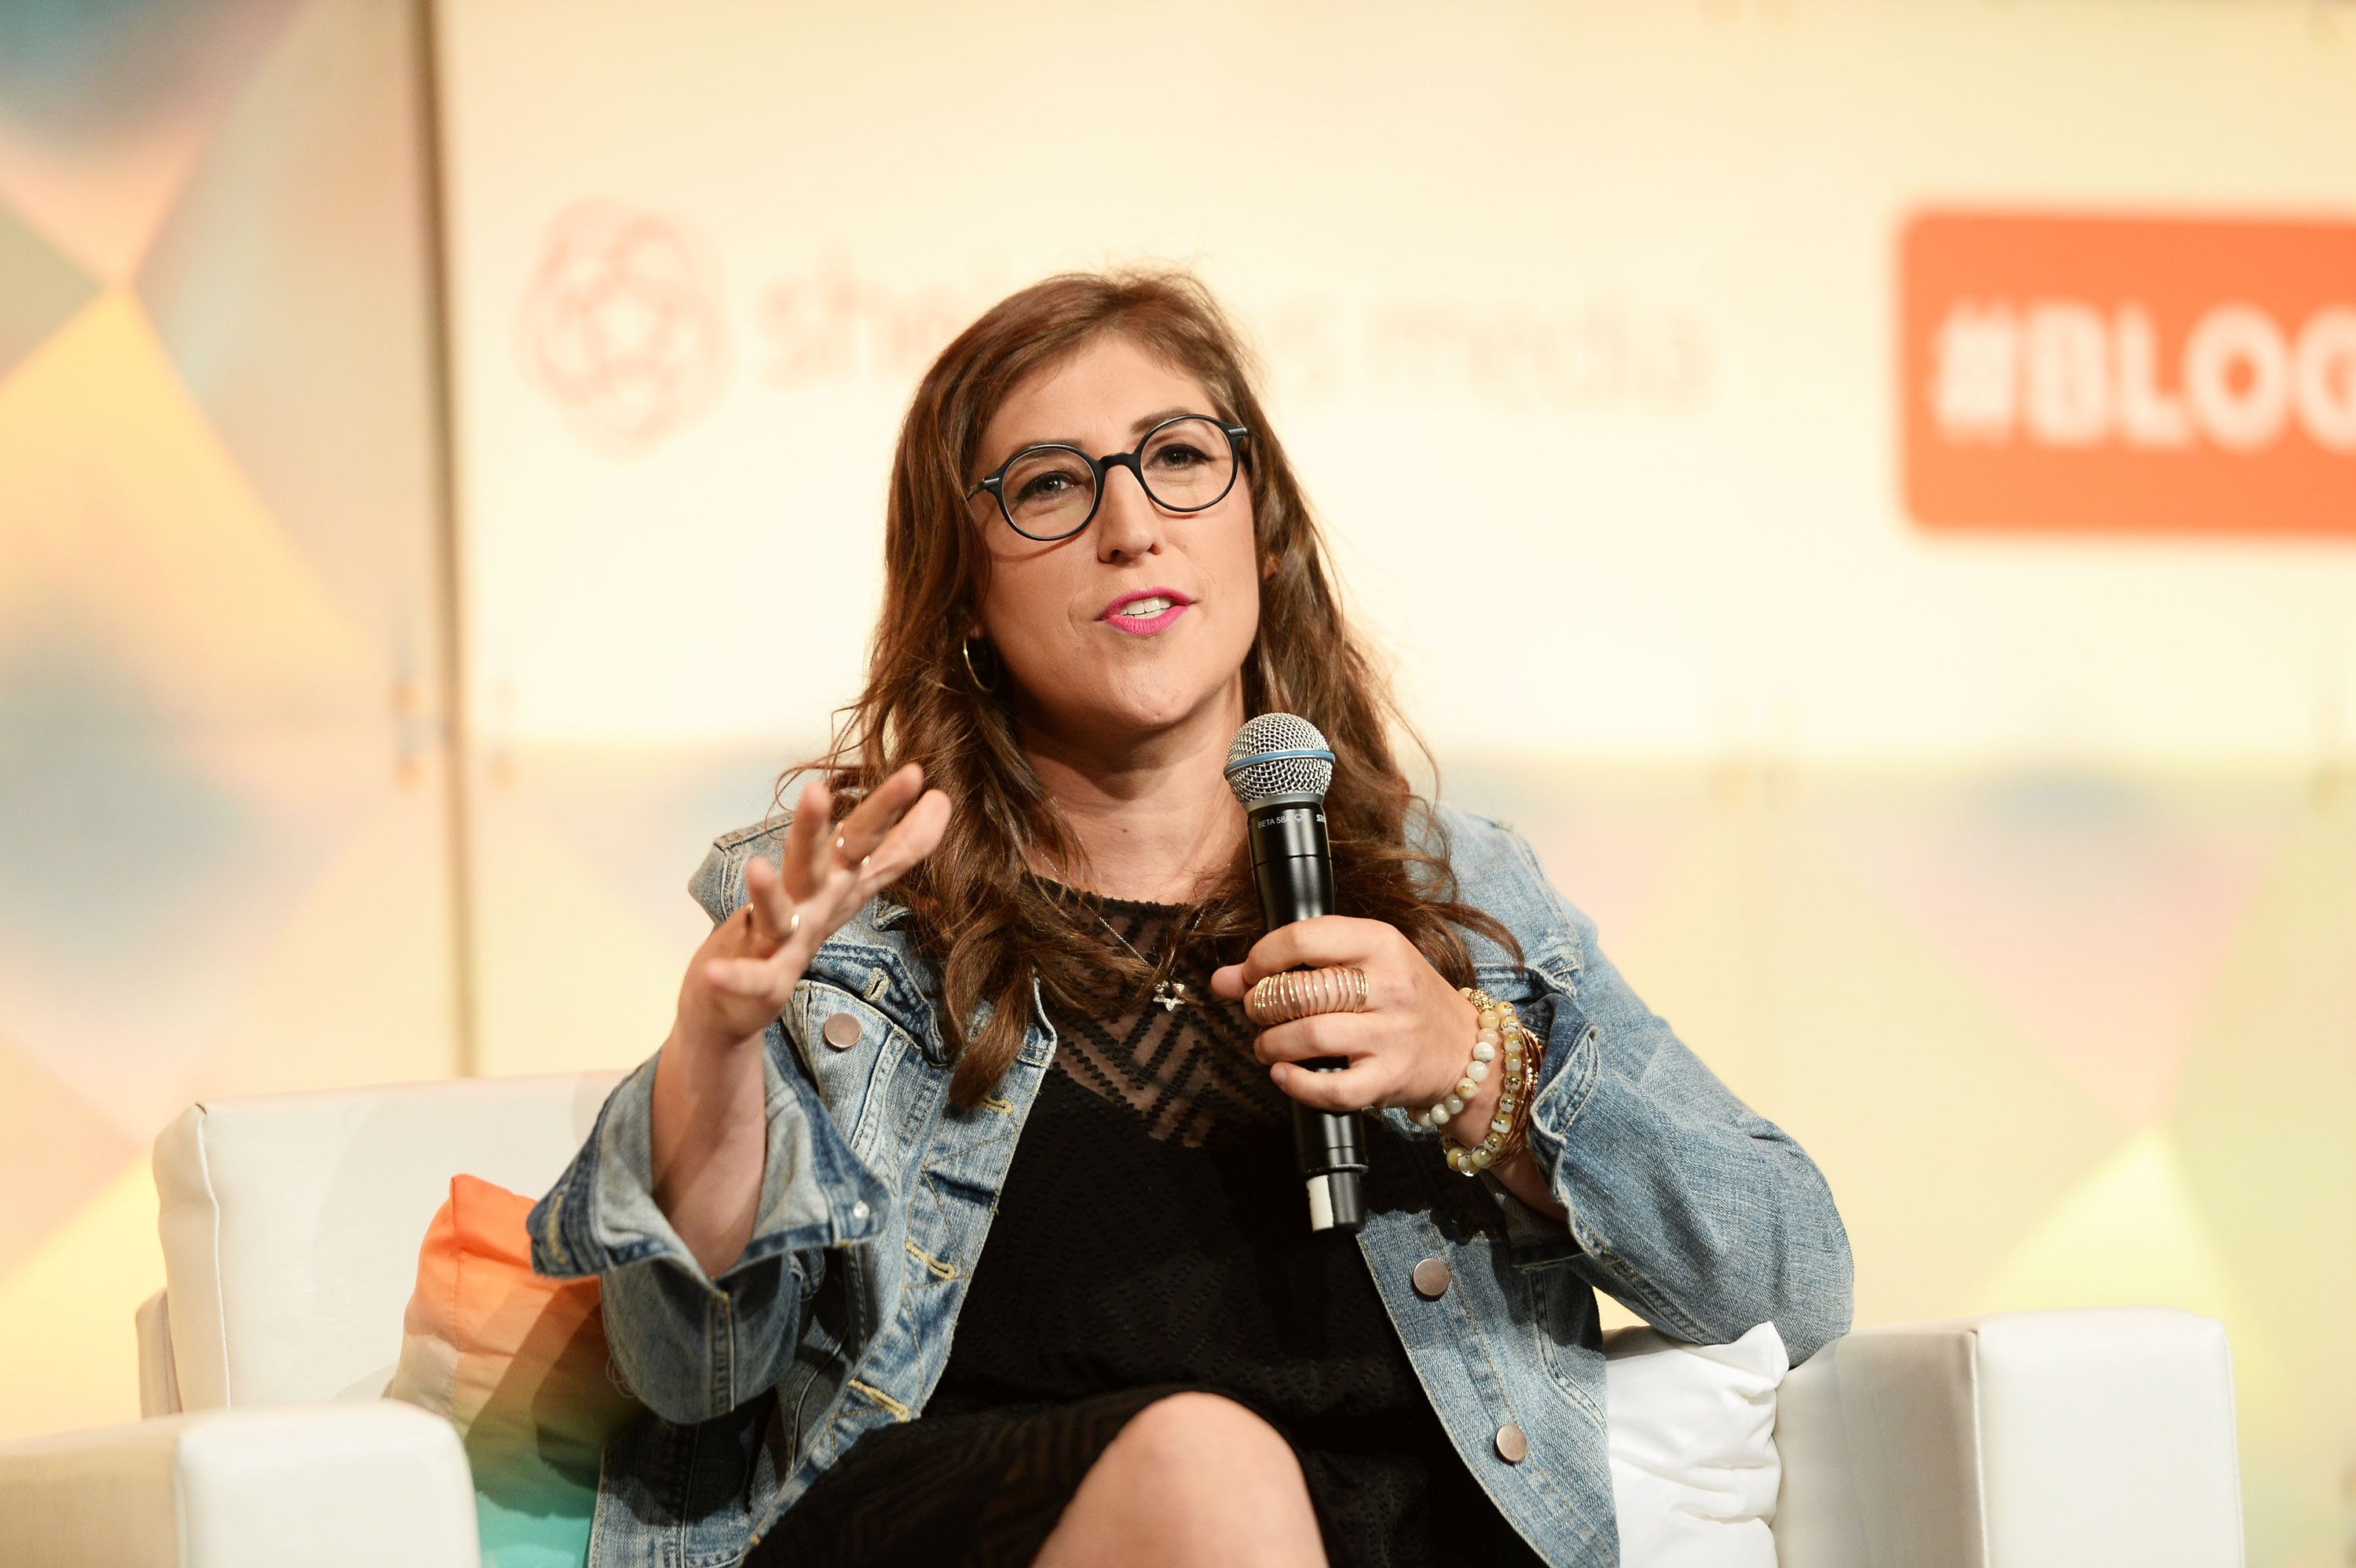 Image Credits: Getty Images / Matt Winkelmeyer | Actress Mayim Bialik speaks onstage during the #BlogHer16 Experts Among Us Conference at JW Marriott Los Angeles at L.A. LIVE on August 5, 2016 in Los Angeles, California.